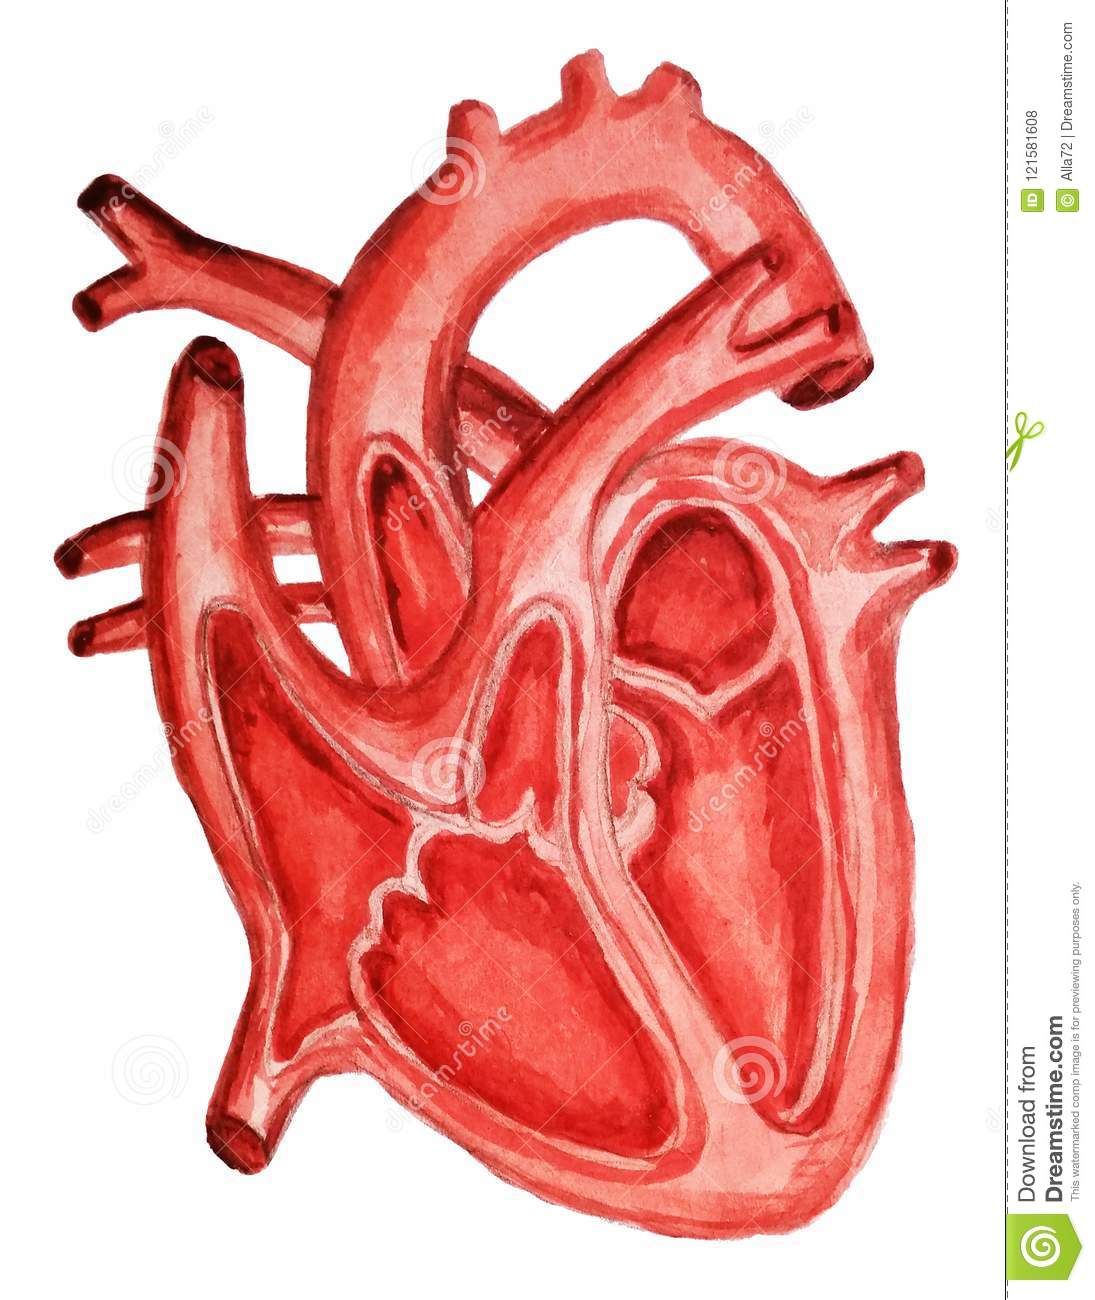 Part Of The Human Heart Anatomy Diastole And Systolelling And